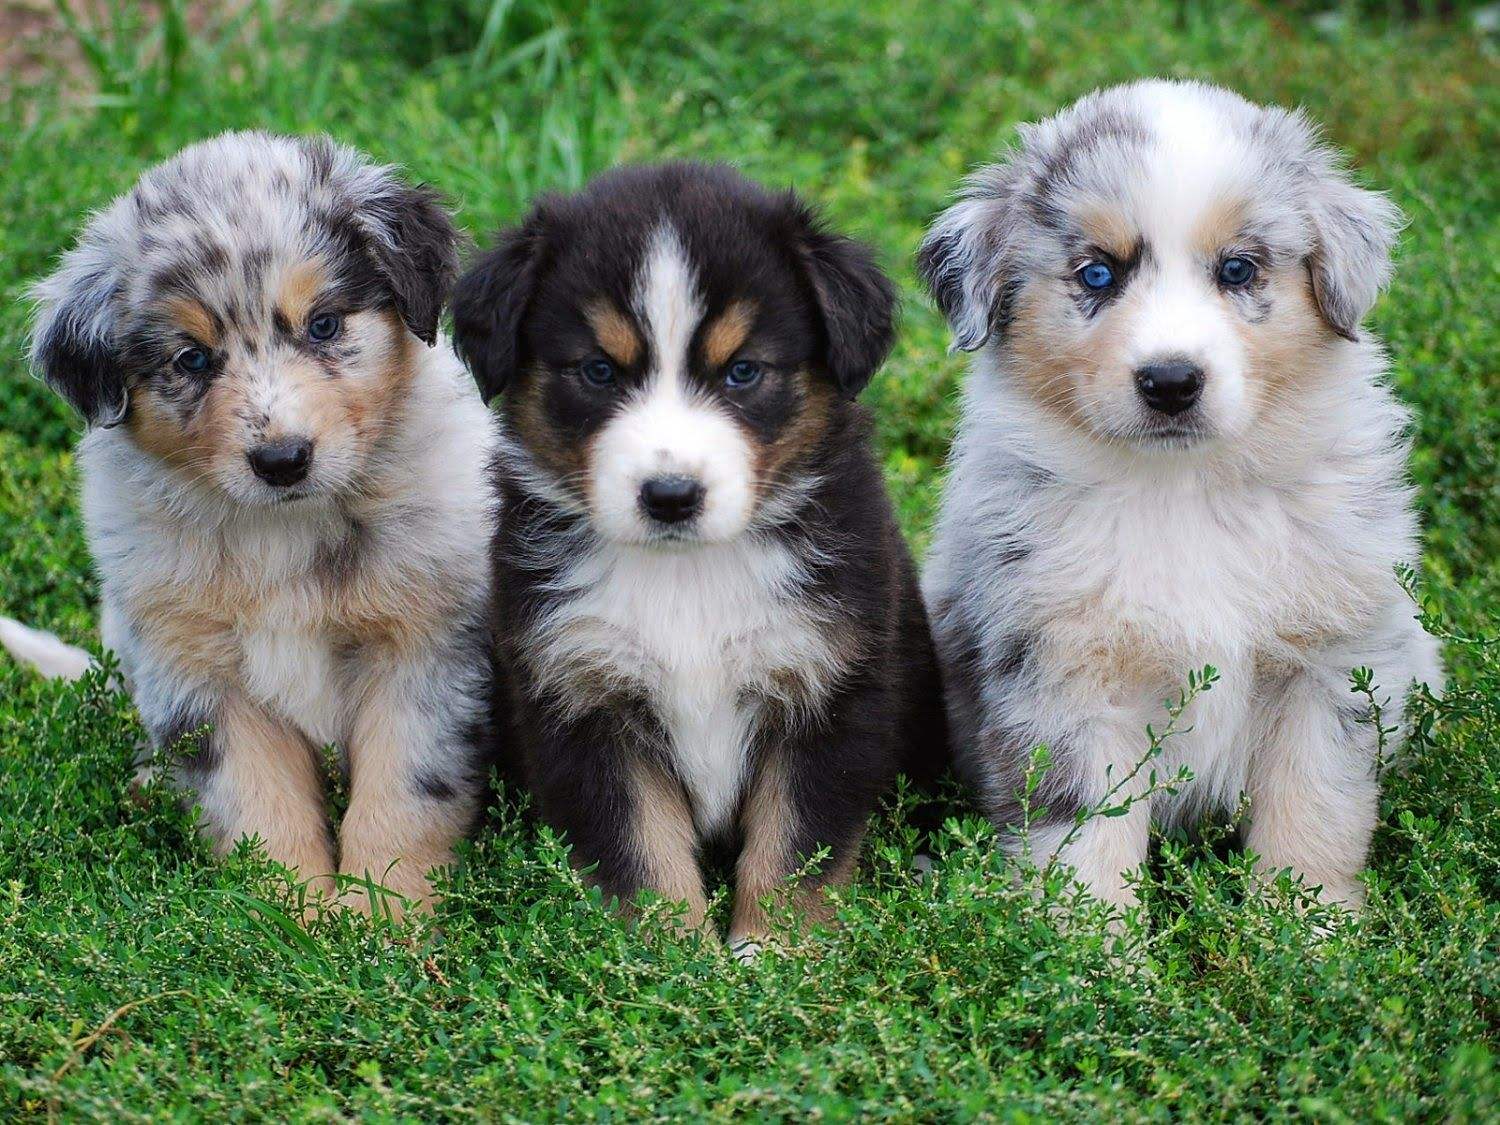 Rules Of The Jungle Australian Shepherd Puppies Shepherd Mix Puppies Australian Shepherd Dogs Australian Shepherd Puppies